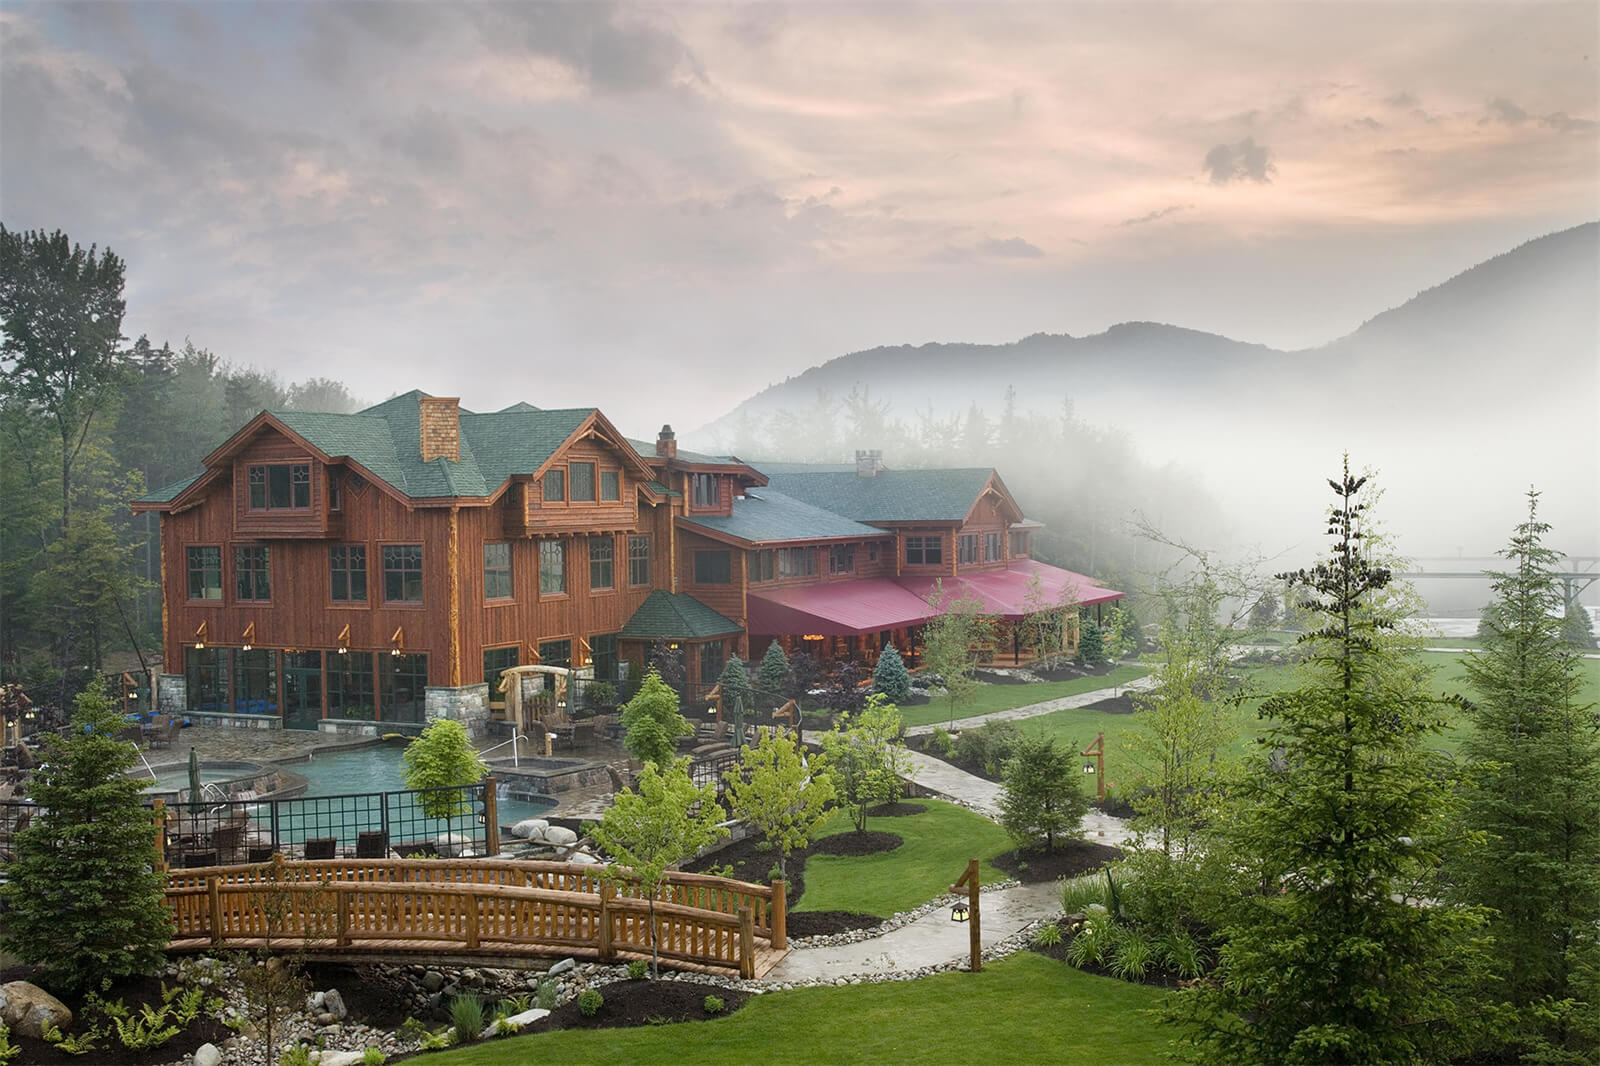 Whiteface Lodge – Lake Placid, New York